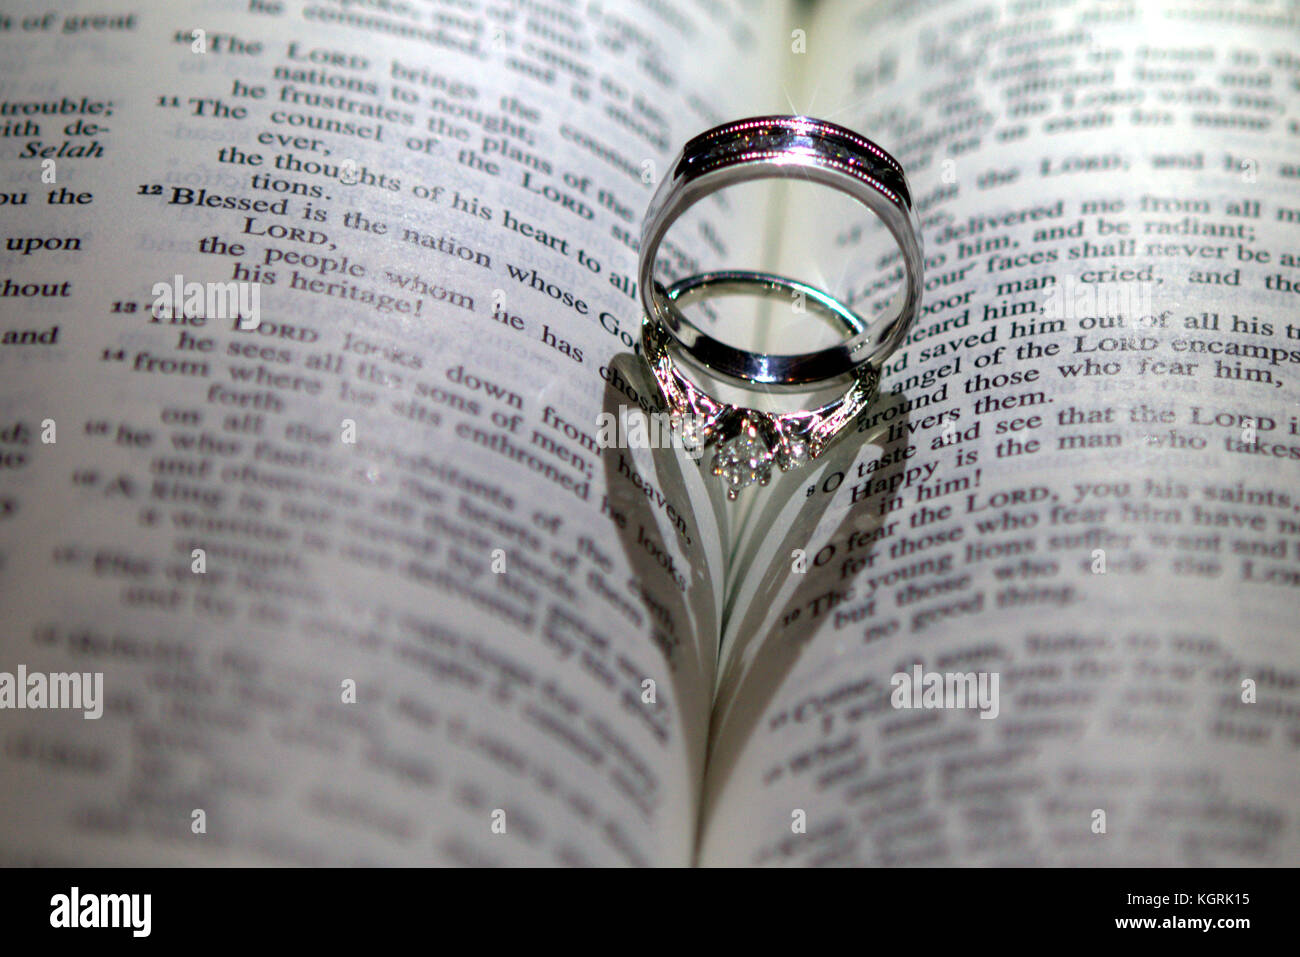 on a wedding royalty stock rings scripture free photo bible two image